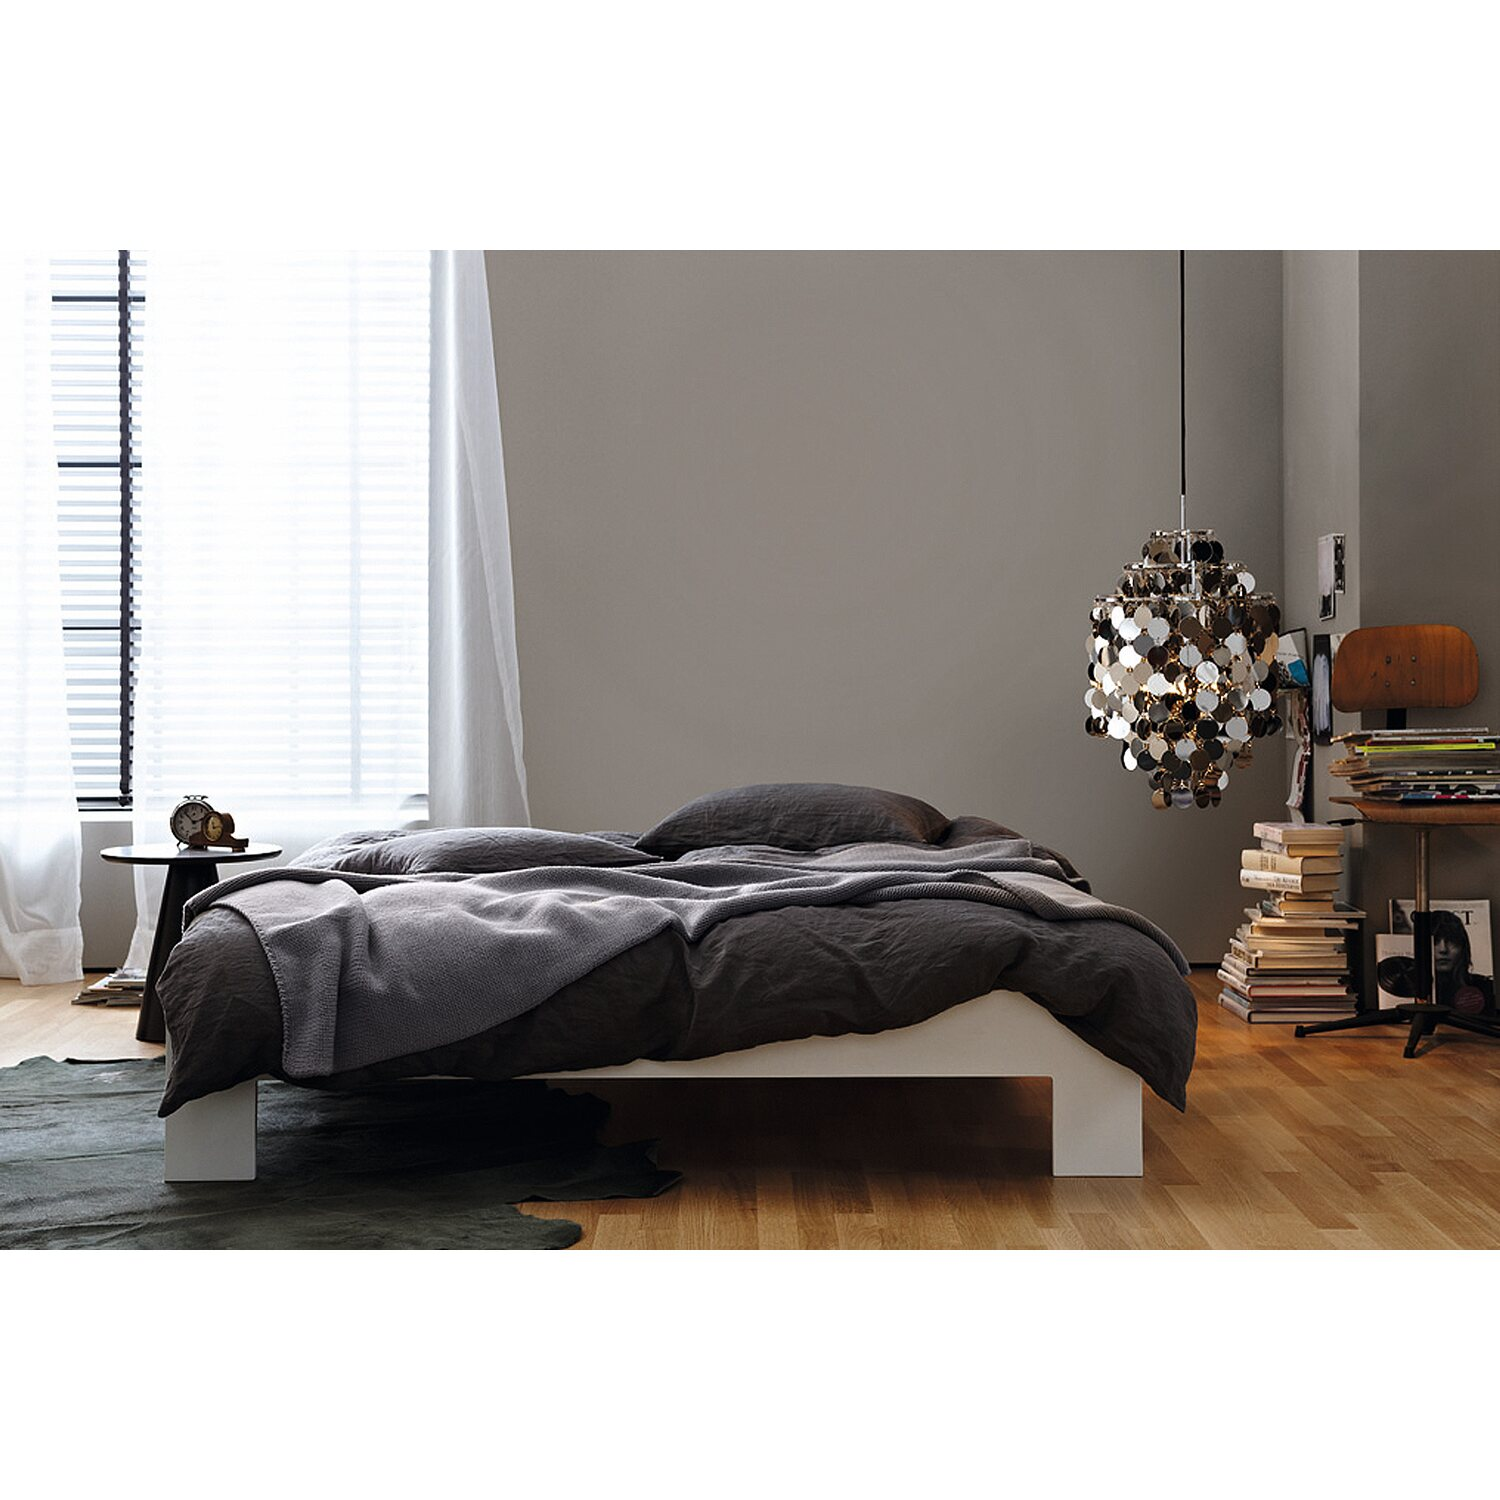 obi wandfarbe mischen vollbild with obi wandfarbe mischen elegant farbe mischen lassen obi. Black Bedroom Furniture Sets. Home Design Ideas